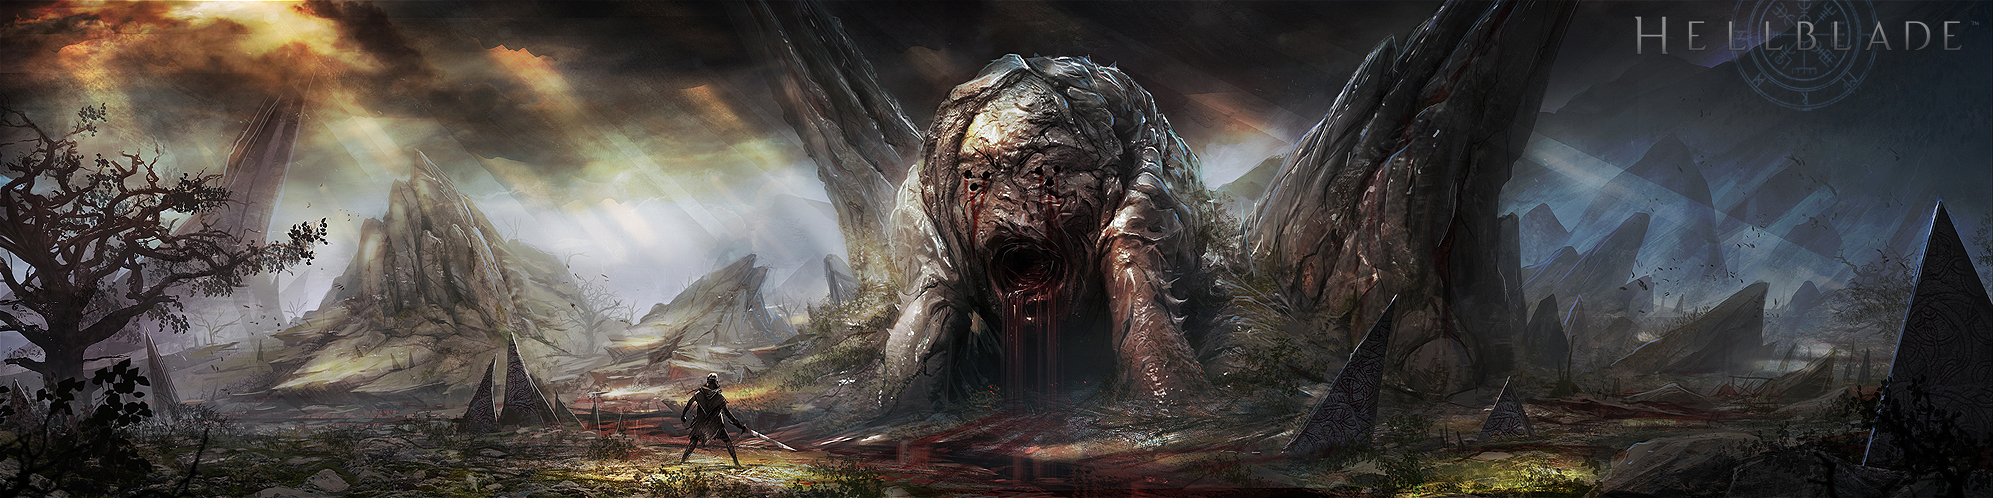 1420737995-hellblade-mouth-of-hell